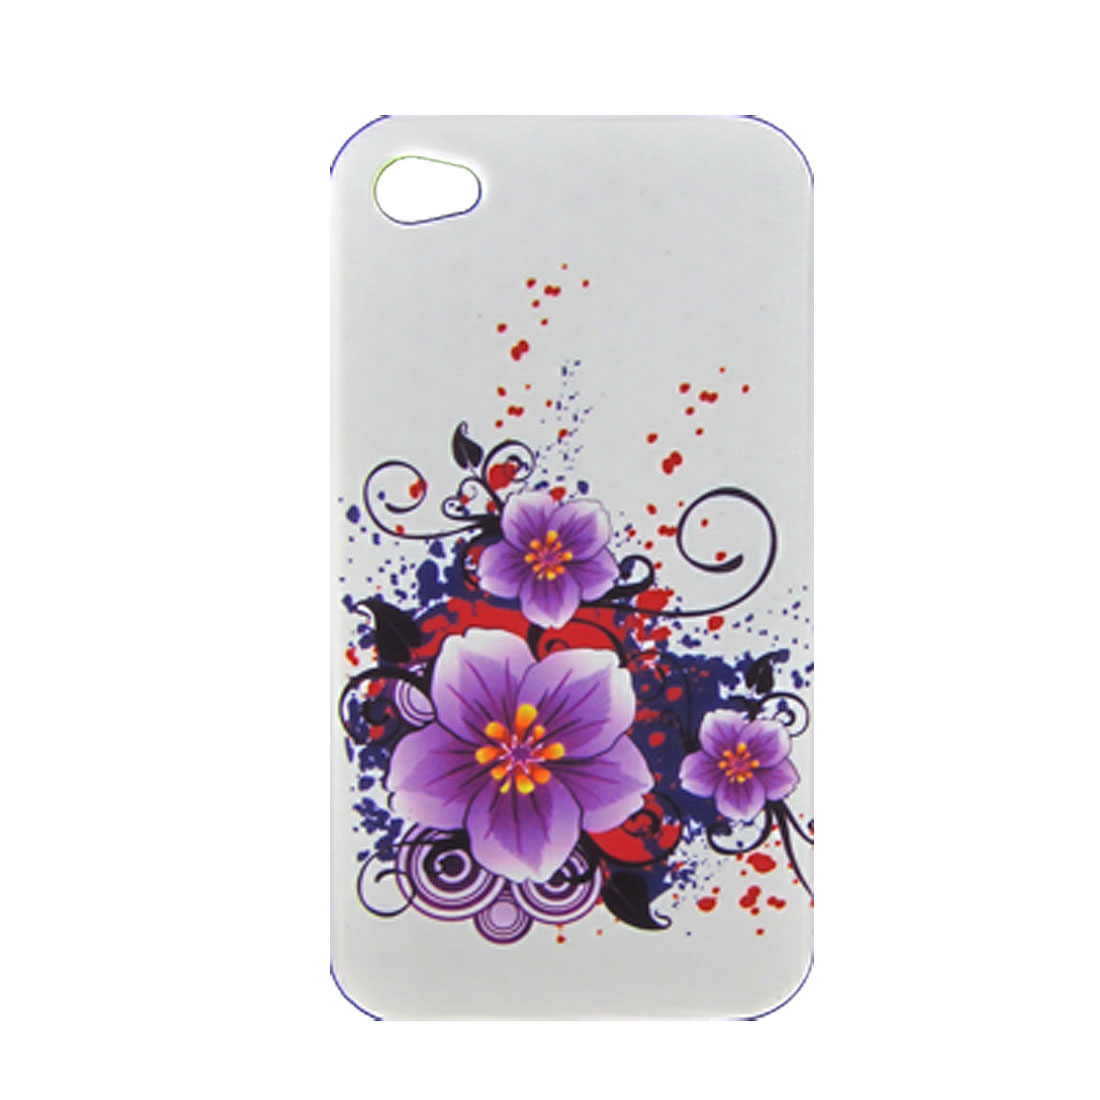 Floral Printed Soft Plastic White Cover w Dustproof Stopper for iPhone 4